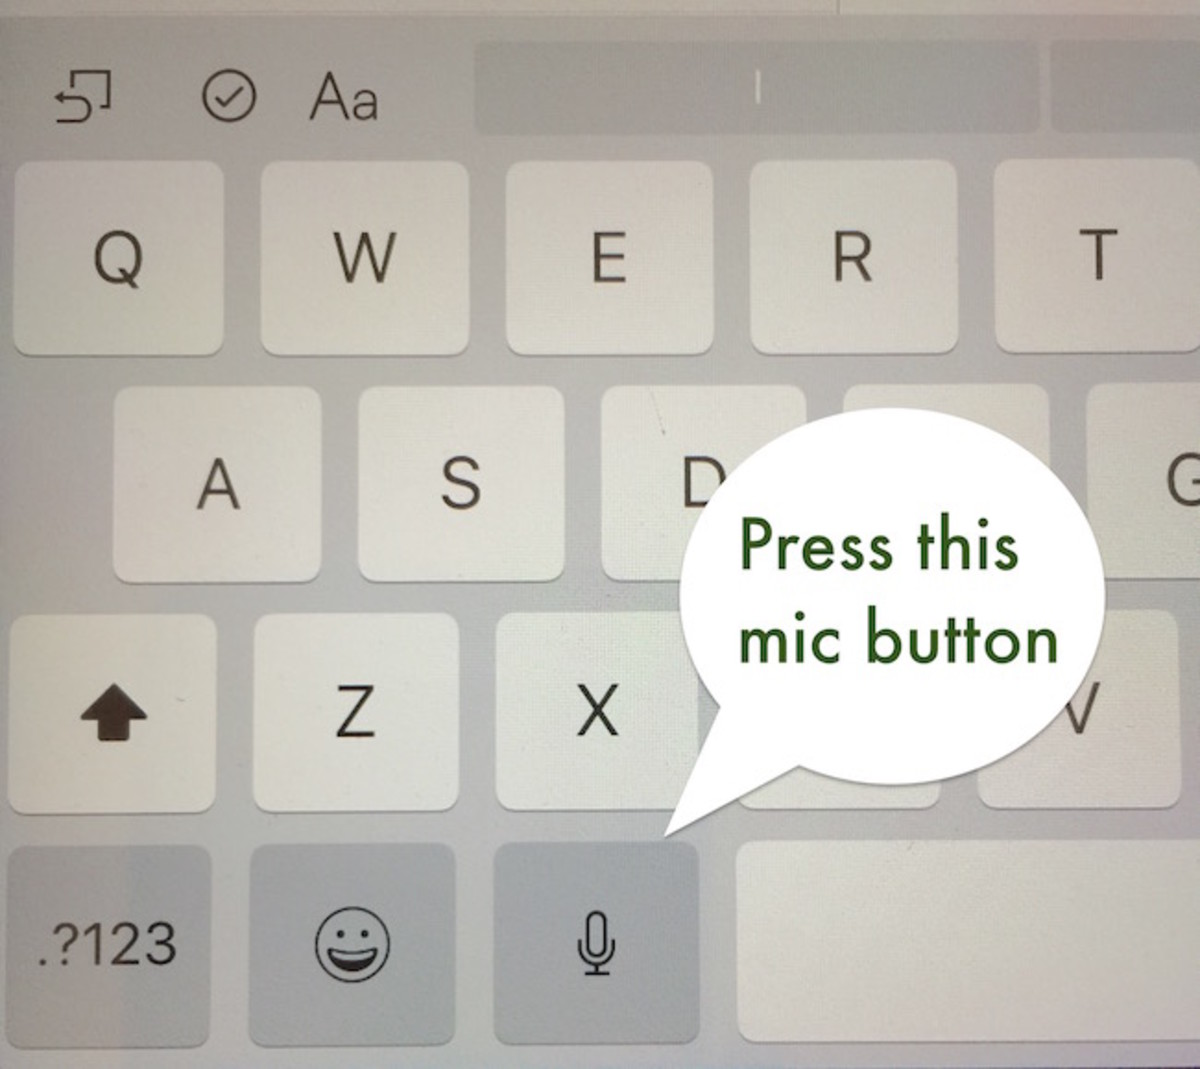 How to Use Apple's Siri for Dictation With an iPhone or iPad